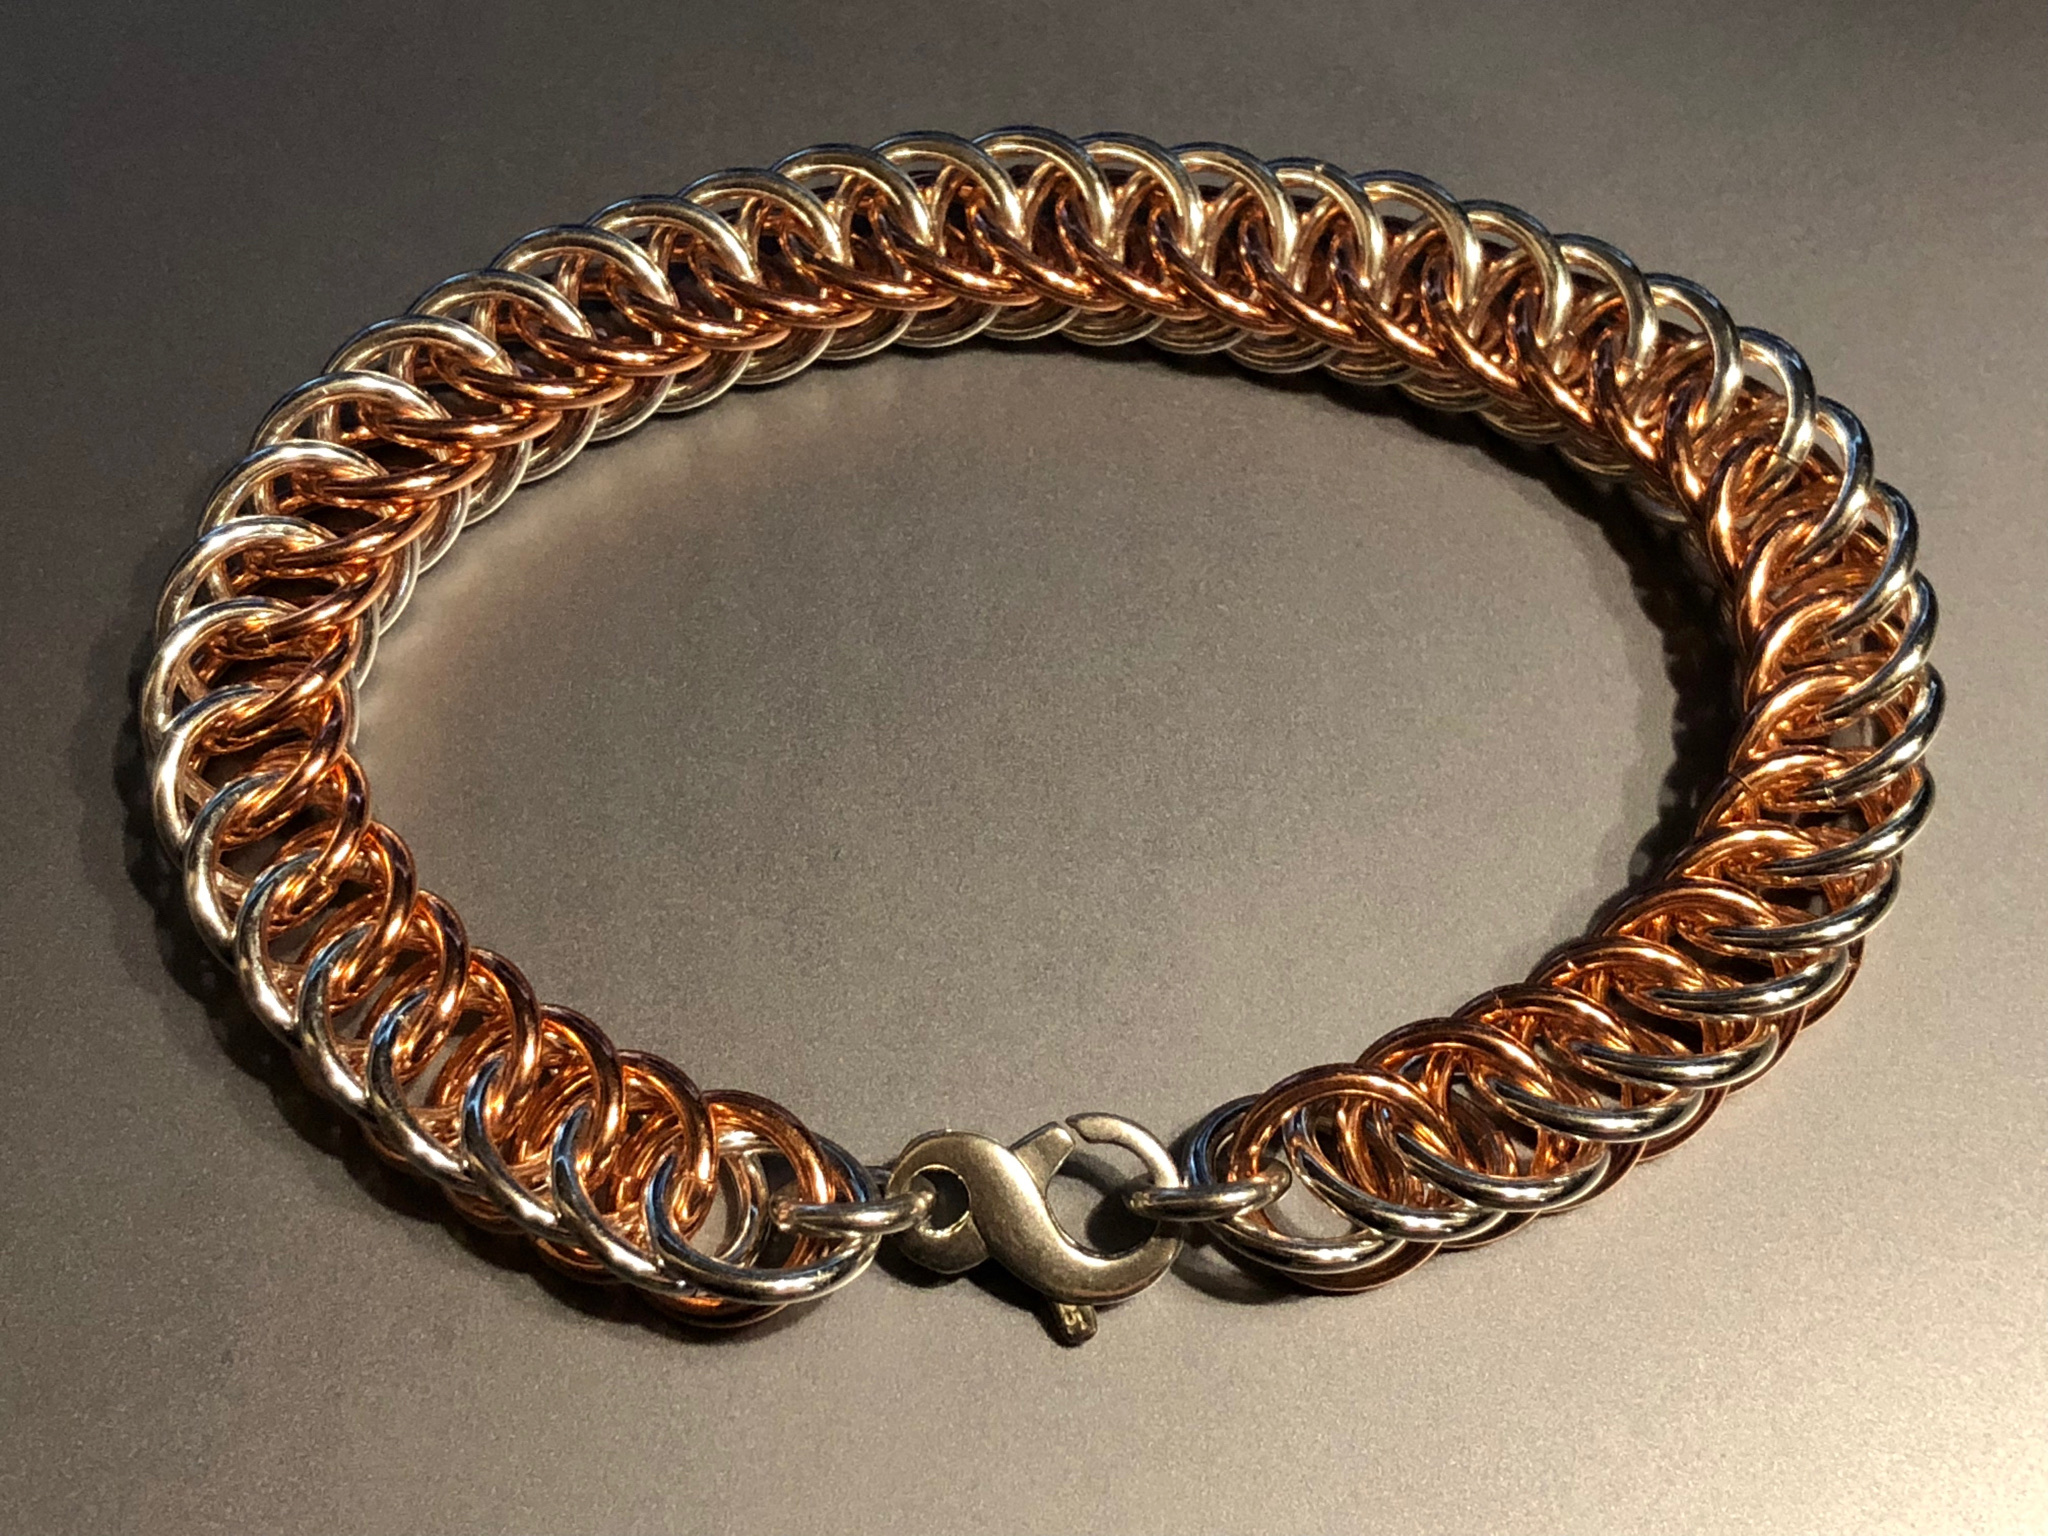 Half Persian 4 in 1 weave Bracelet